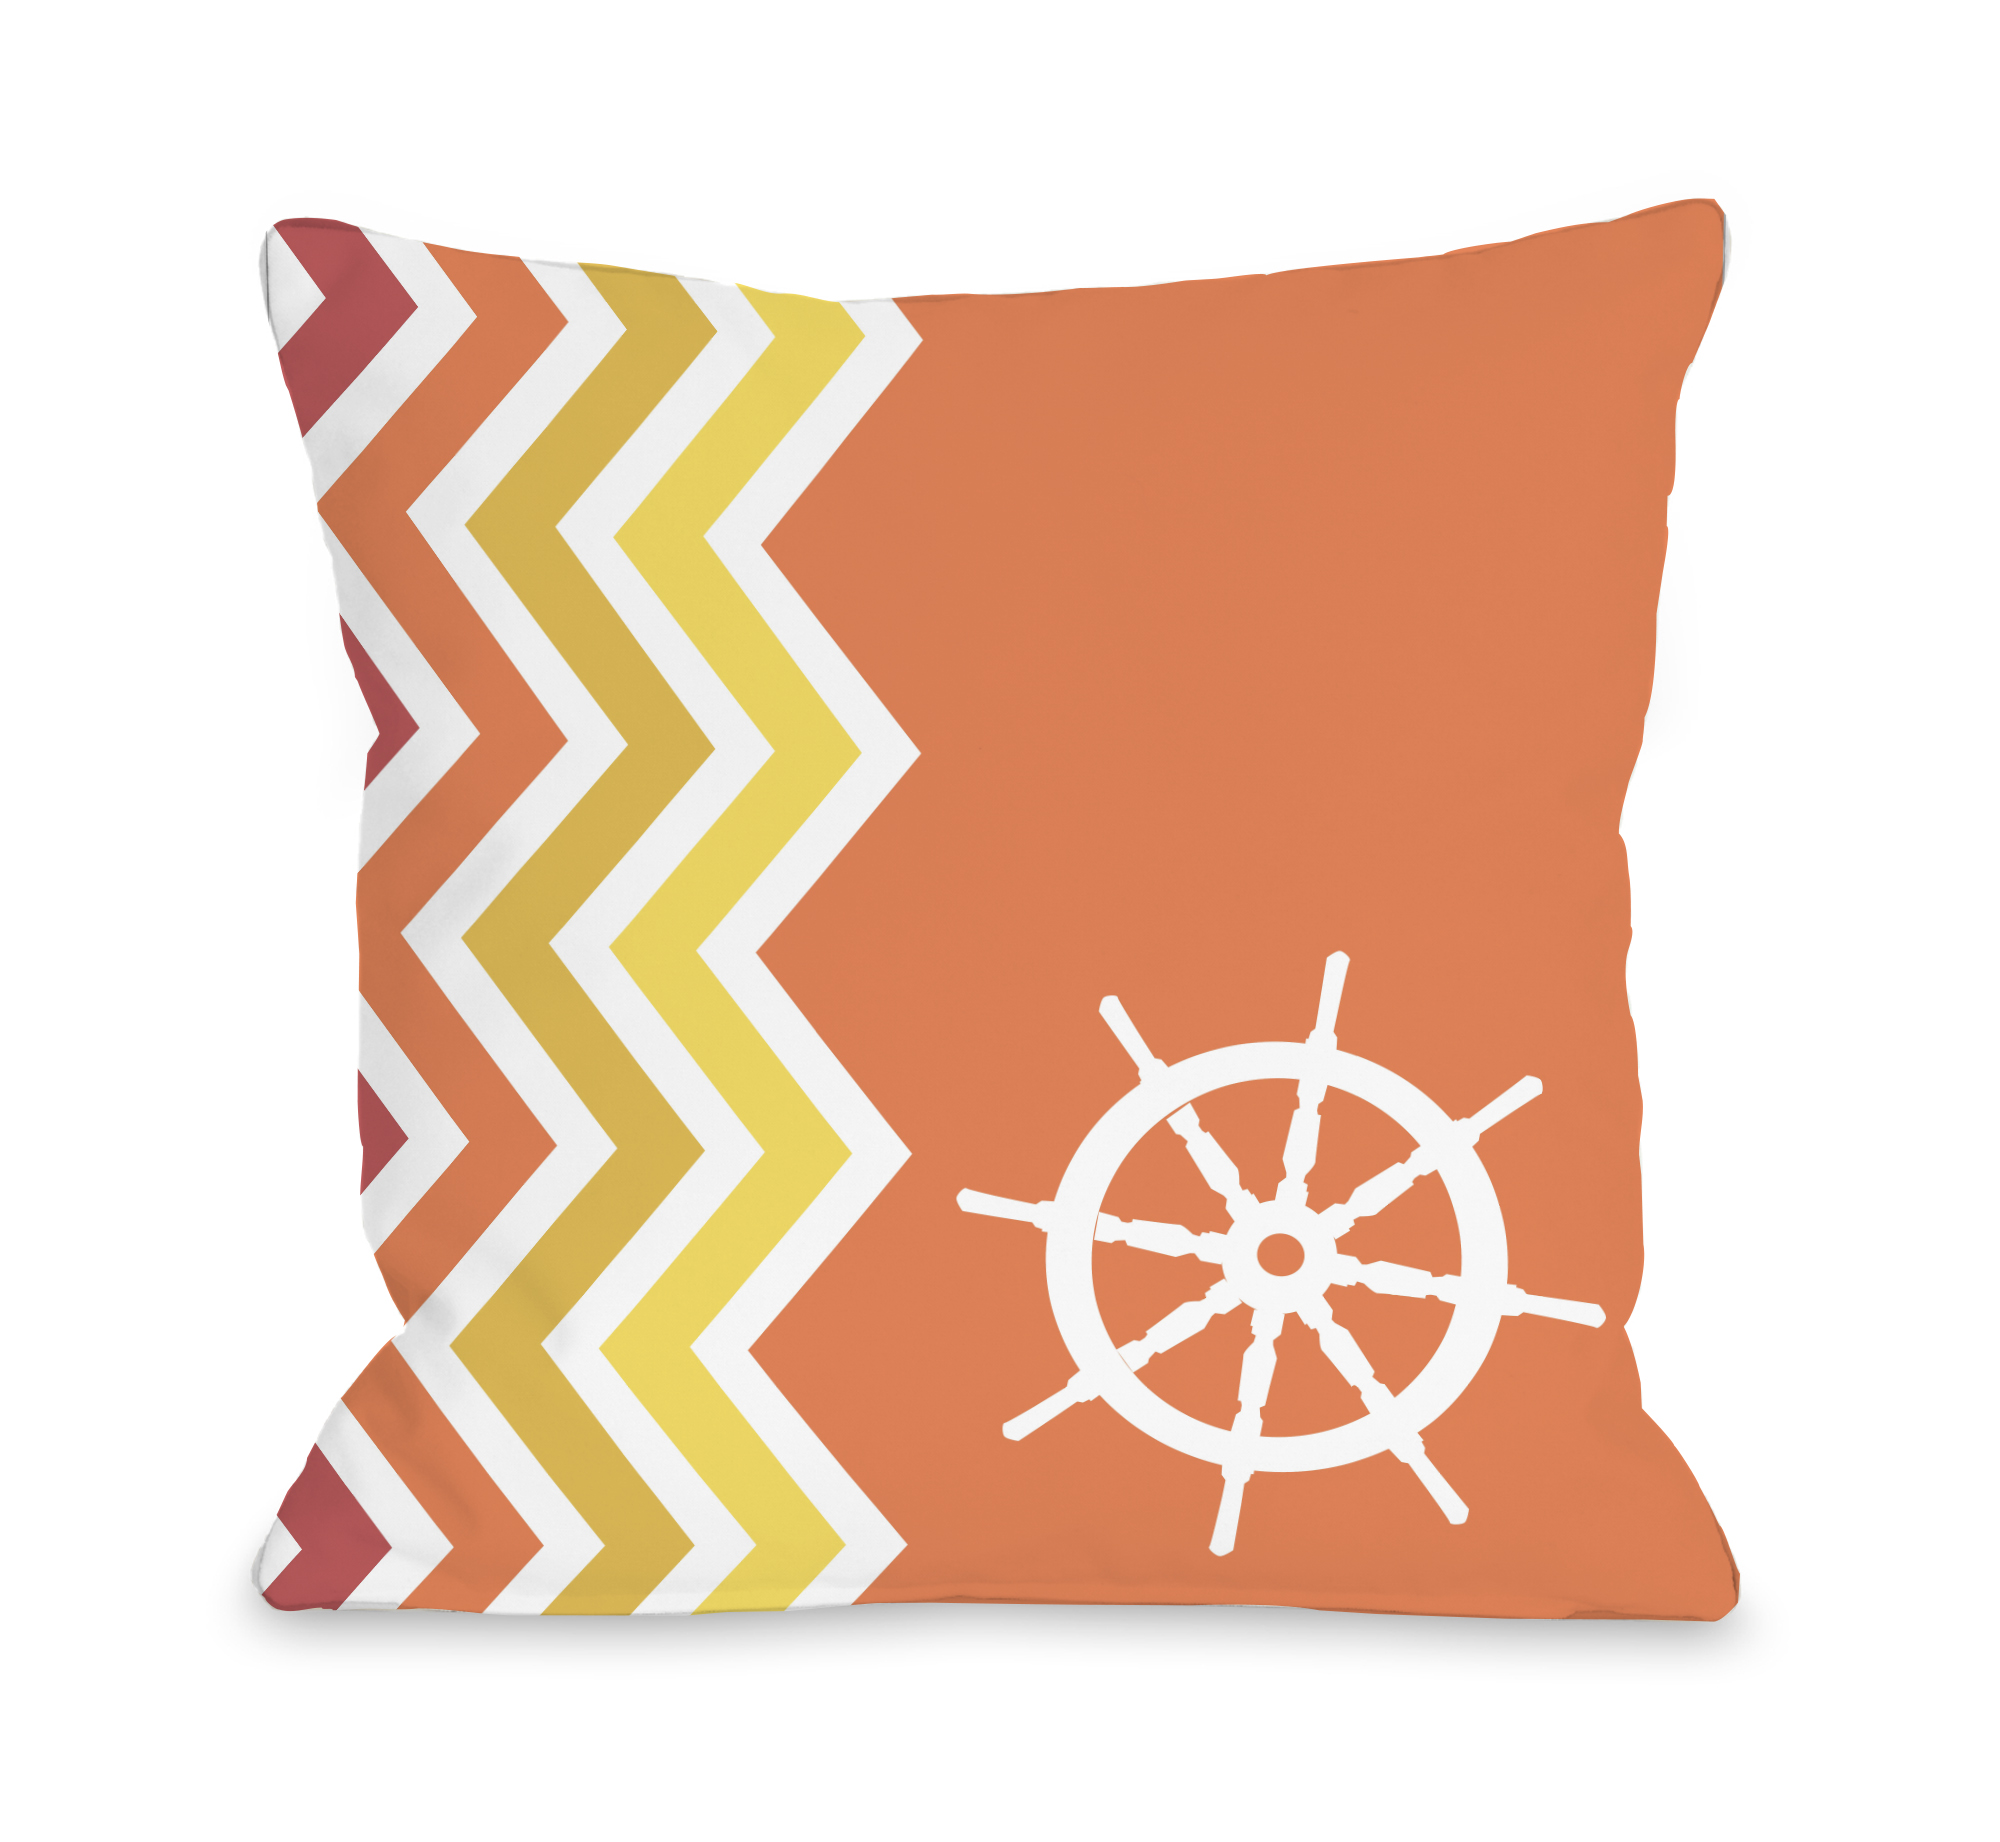 Chevron Wheel - Orange 18x18 Pillow by OBC